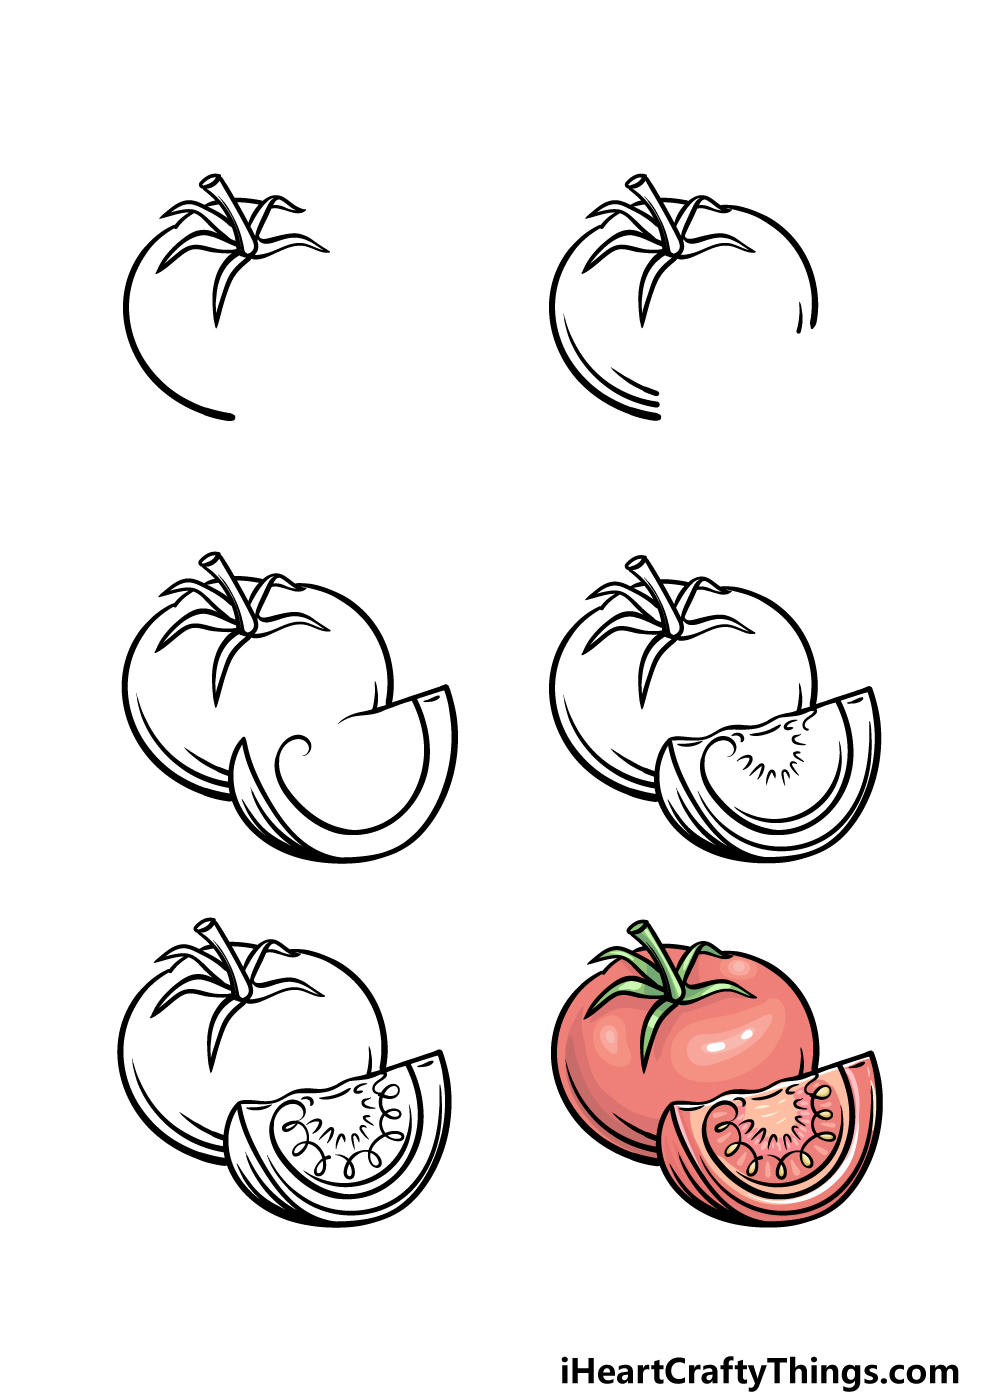 how to draw a tomato in 6 steps